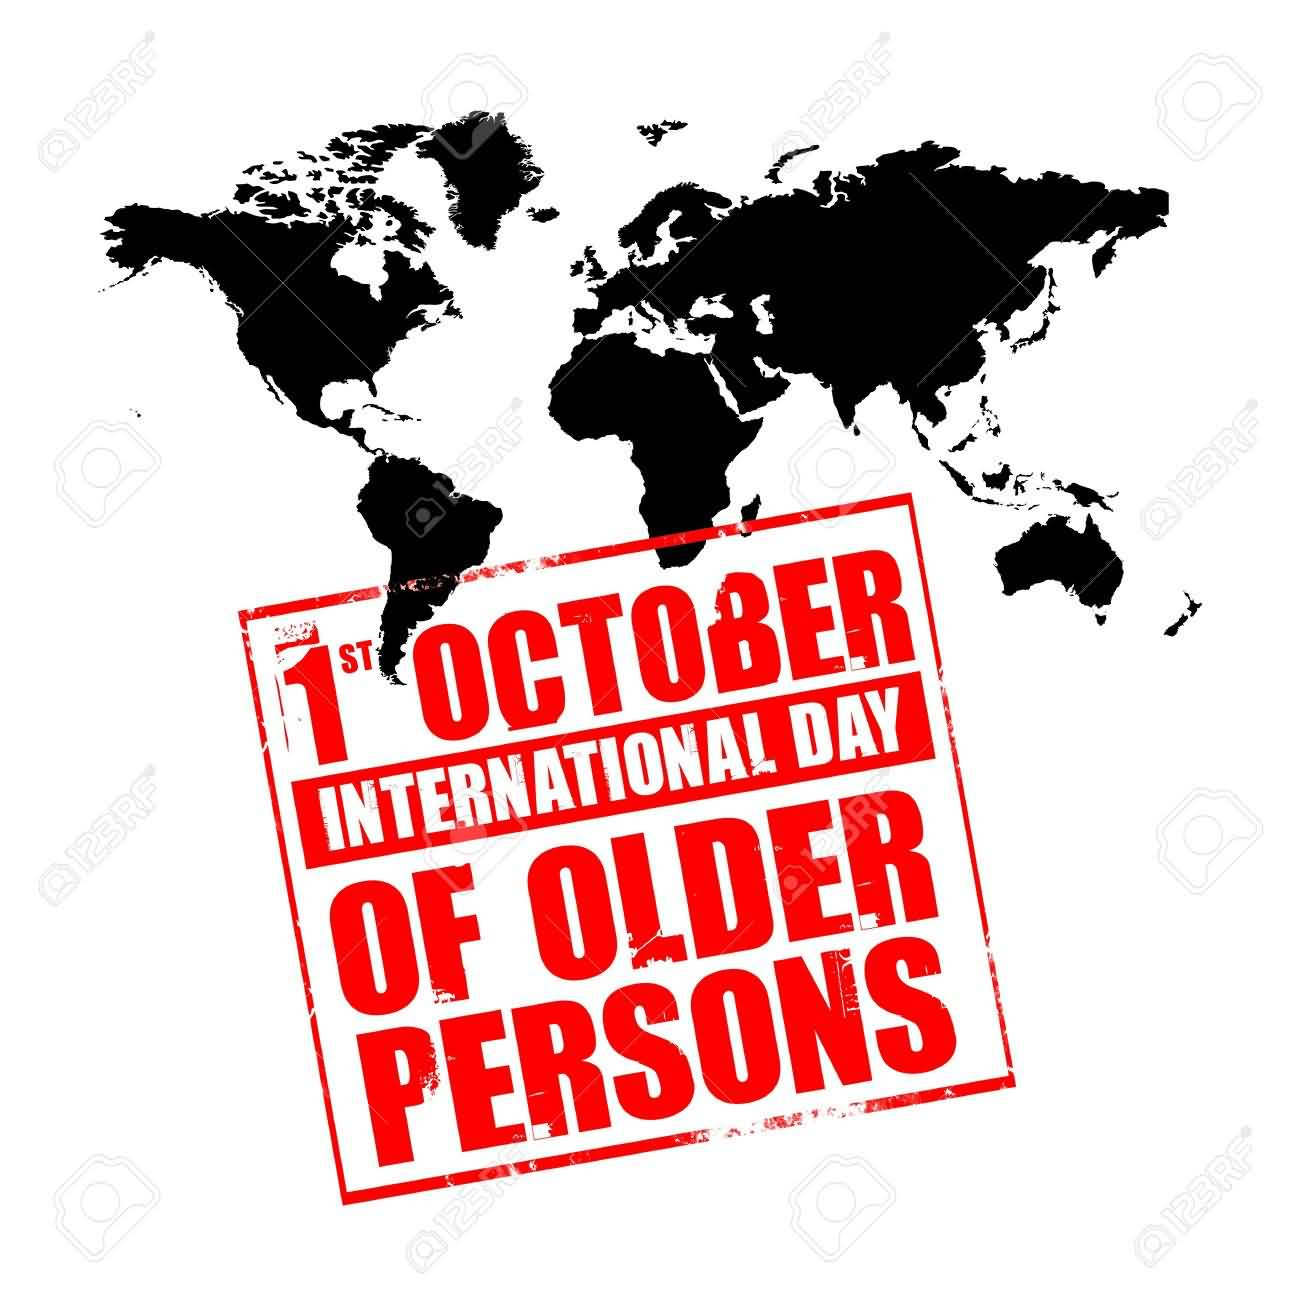 1st October International Day of Older Persons World Map In.